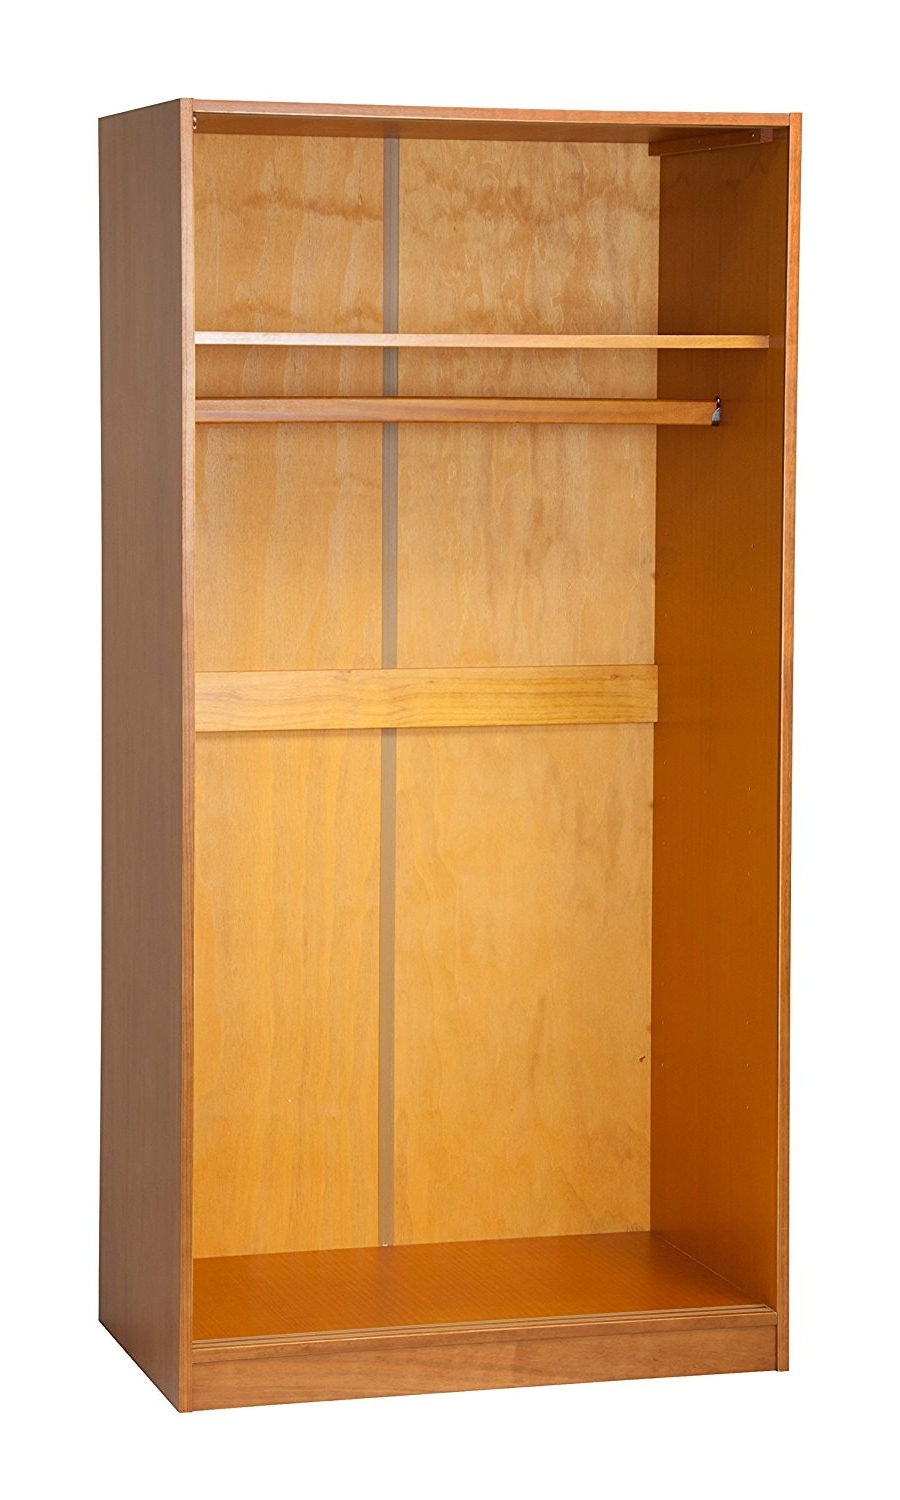 [%Amazon: 100% Solid Wood 2 Sliding Door Wardrobe/armoire/closet For Well Known Pine Wardrobes With Drawers And Shelves|Pine Wardrobes With Drawers And Shelves For Well Liked Amazon: 100% Solid Wood 2 Sliding Door Wardrobe/armoire/closet|Current Pine Wardrobes With Drawers And Shelves Regarding Amazon: 100% Solid Wood 2 Sliding Door Wardrobe/armoire/closet|Fashionable Amazon: 100% Solid Wood 2 Sliding Door Wardrobe/armoire/closet Regarding Pine Wardrobes With Drawers And Shelves%] (View 1 of 15)